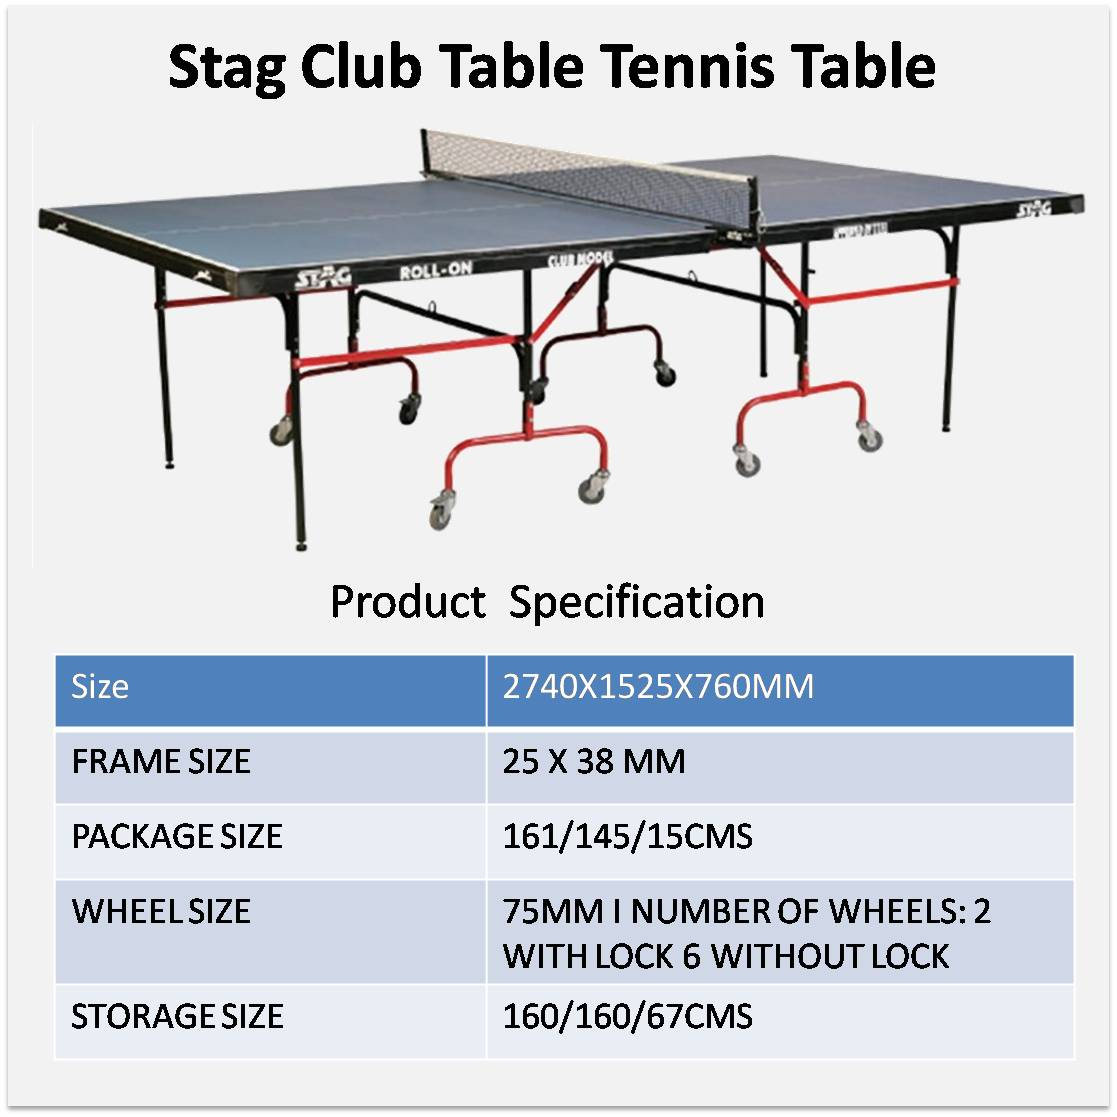 Stag Club Table Tennis Table   Buy Stag Club Table Tennis Table Online At  Lowest Prices In India     Khelmart.com